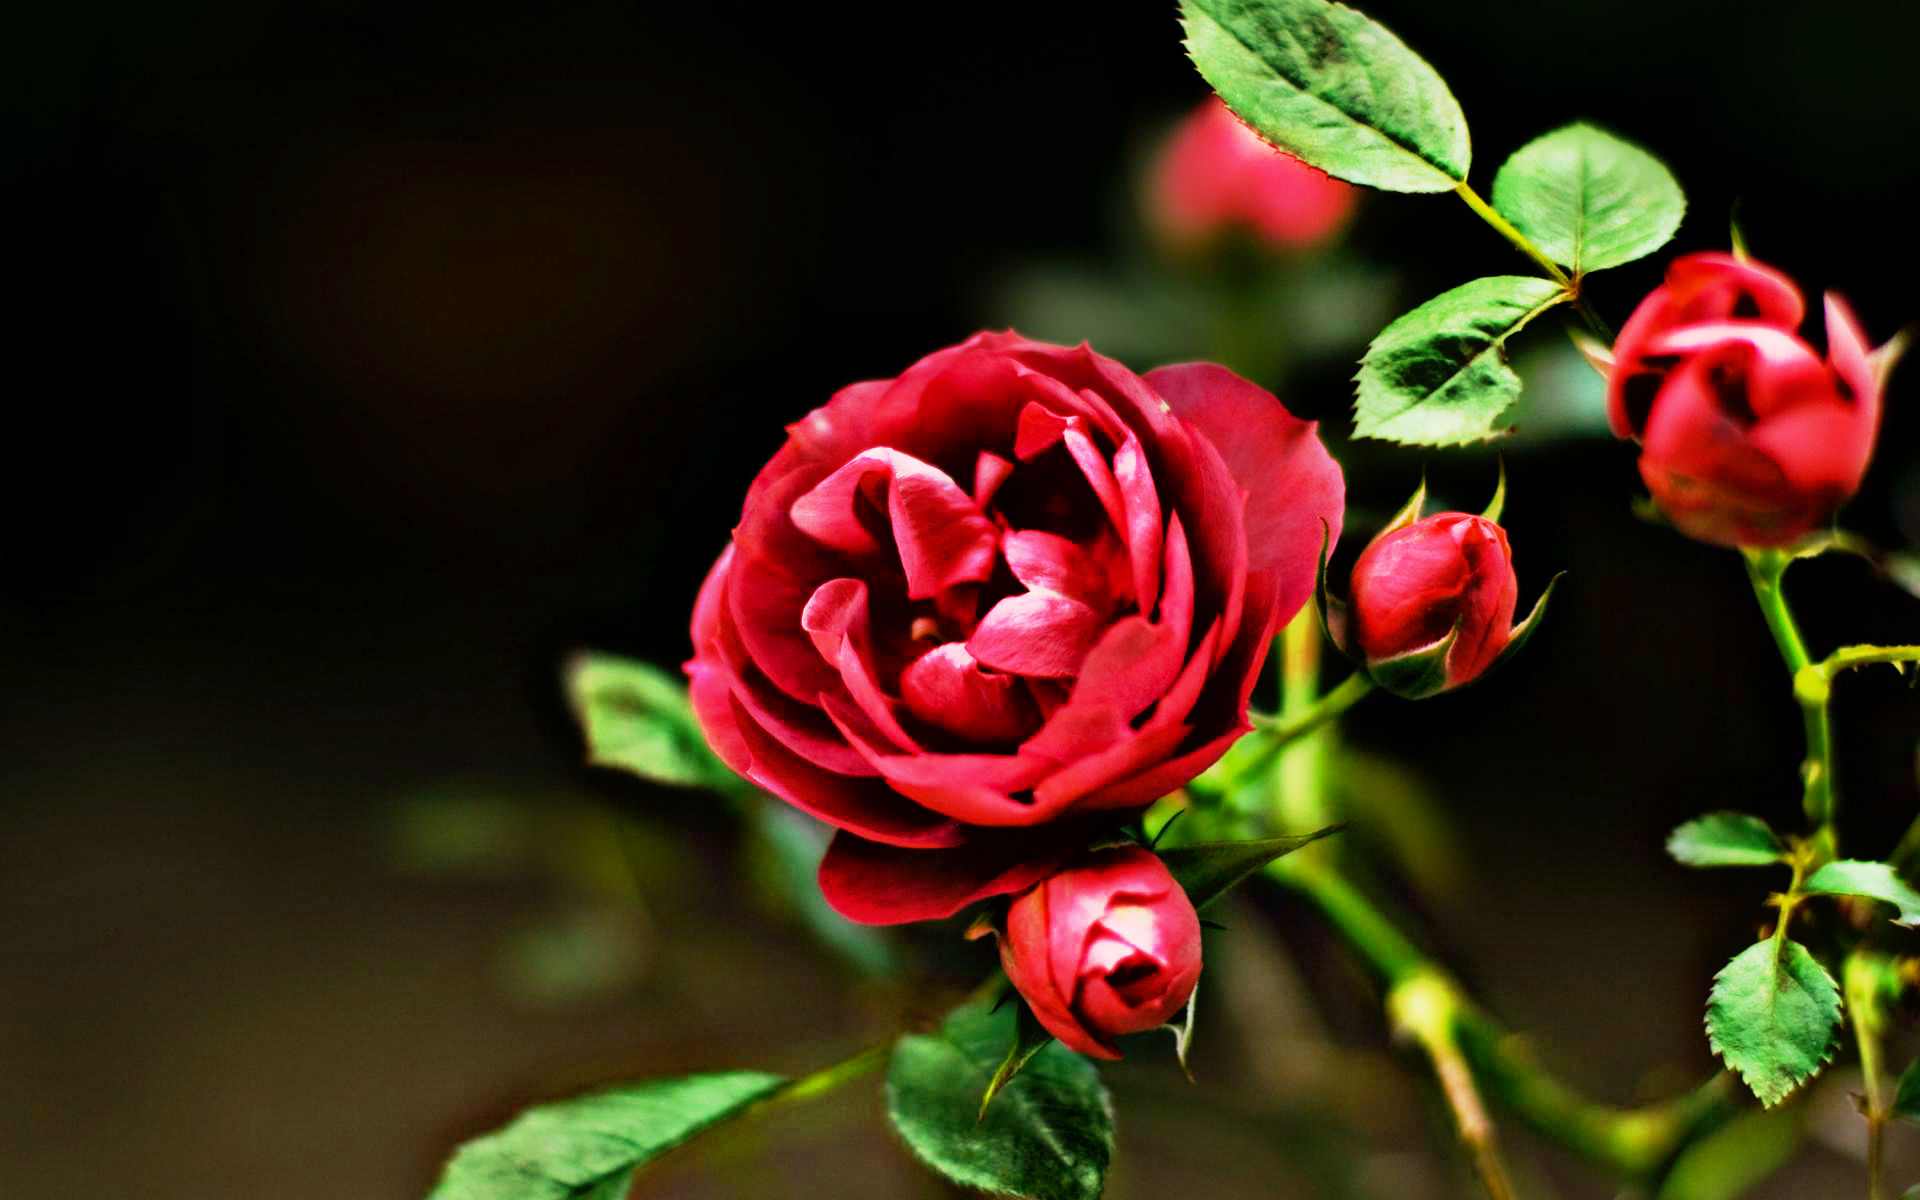 red flowers hd nature wallpaper with rose picture | hd wallpapers